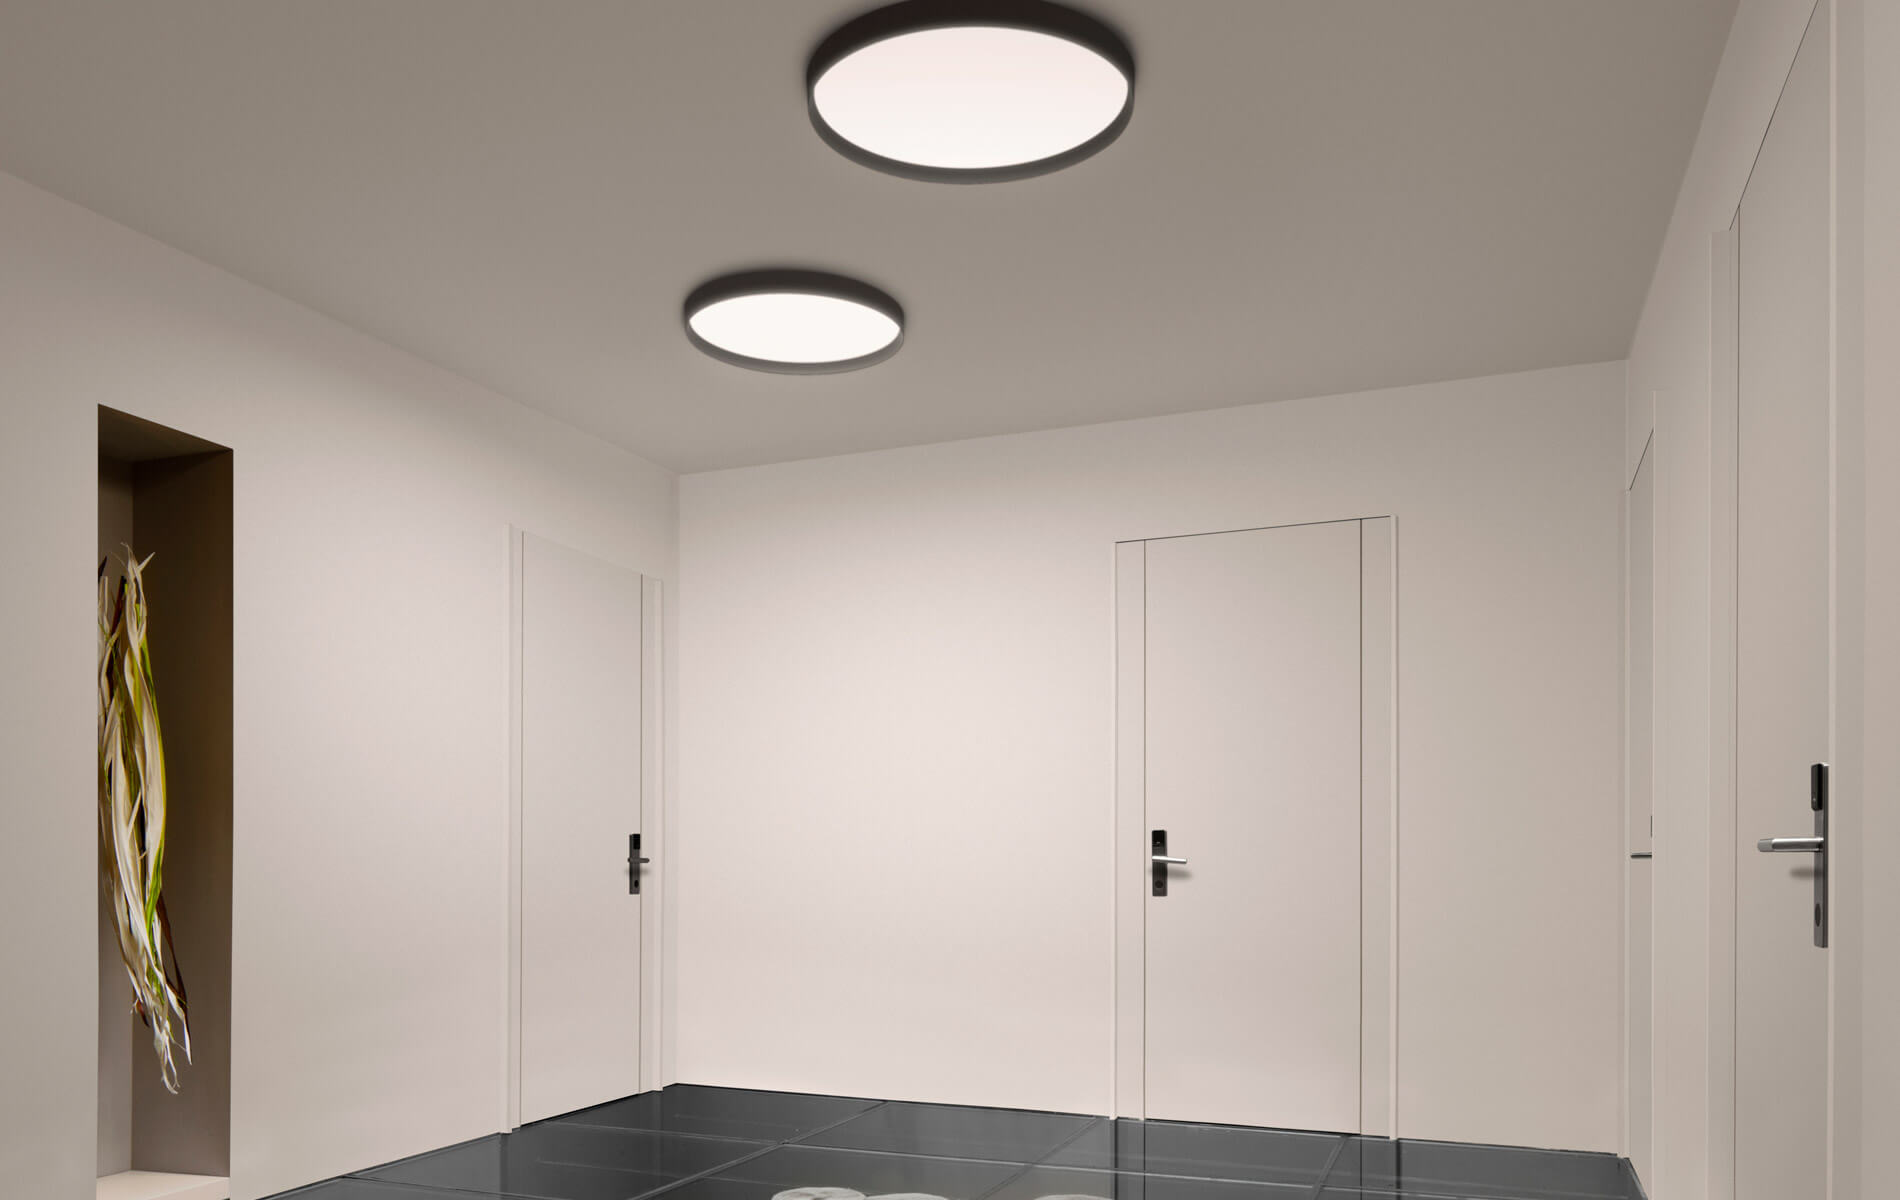 More information of Vibia UP 4442 ceiling lamp